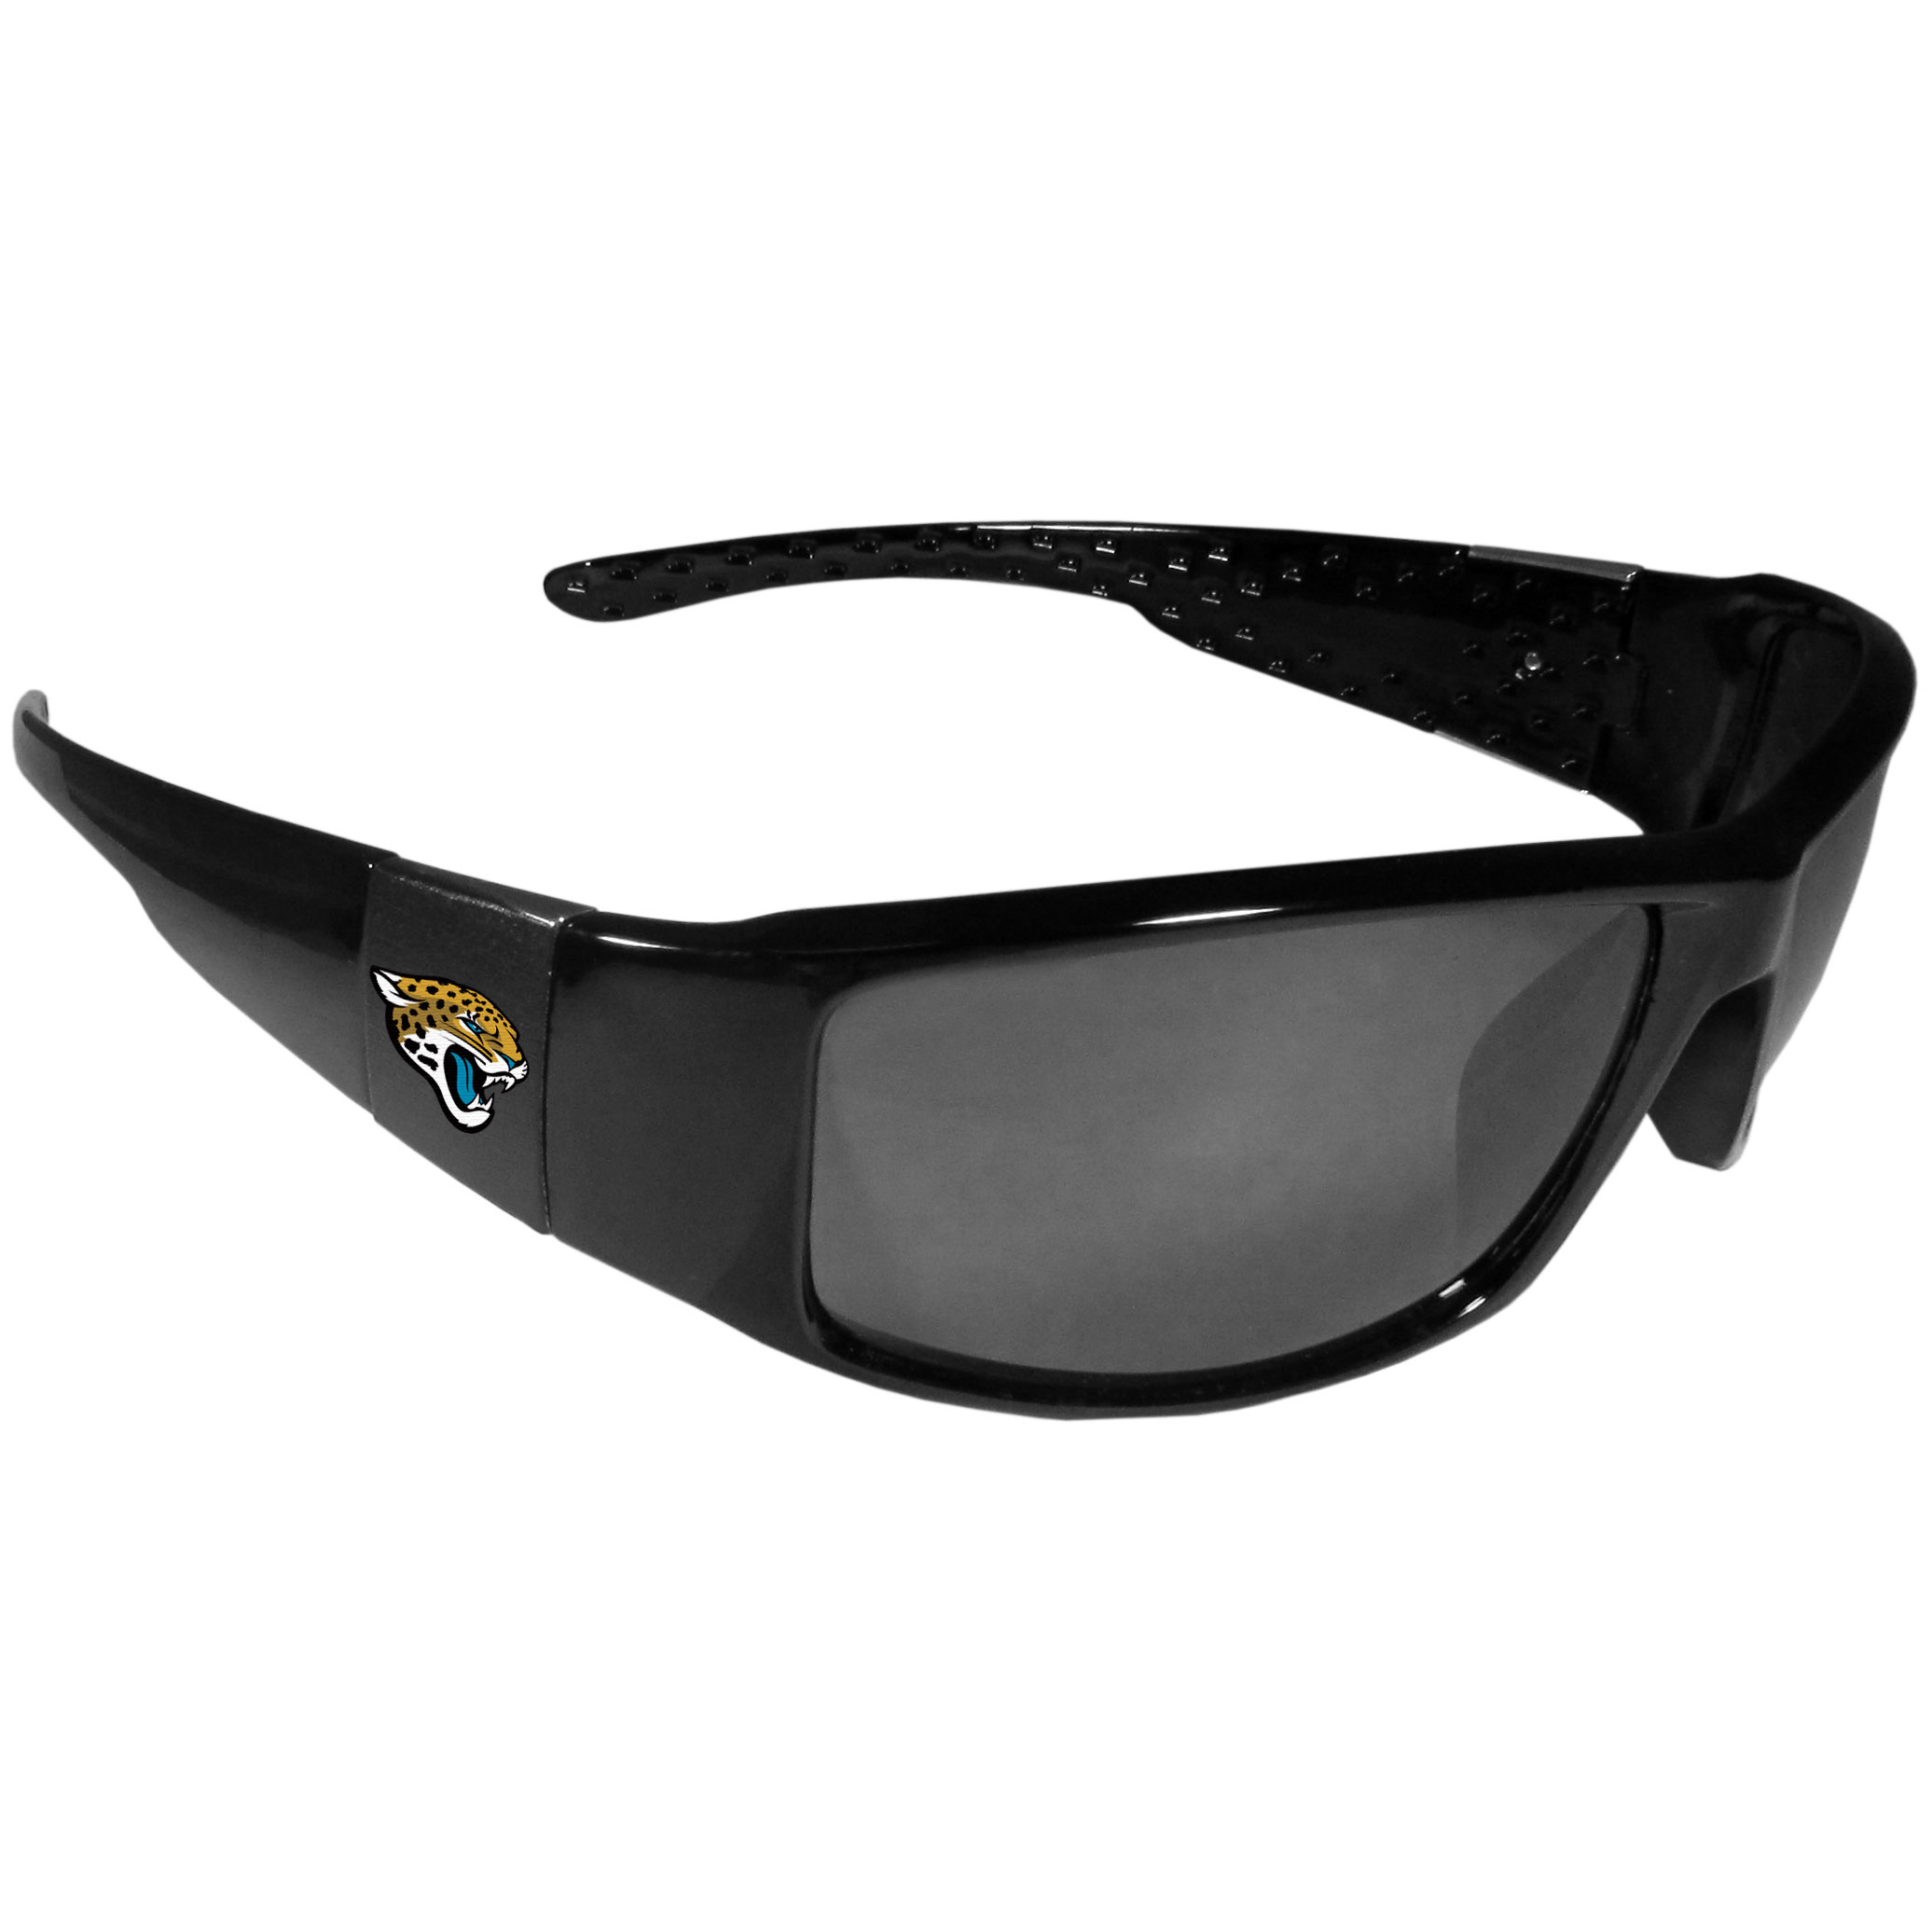 Jacksonville Jaguars Black Wrap Sunglasses - These designer inspired frames have a sleek look in all black with  Jacksonville Jaguars shields on each arm with a printed logo. The shades are perfect for any outdoor activity like; golfing, driving, hiking, fishing or cheering on the team at a tailgating event or at a home game day BBQ with a lens rating of 100% UVA/UVB for maximum UV protection. The high-quality frames are as durable as they are fashionable and with their classic look they are the perfect fan accessory that can be worn everyday for every occasion.